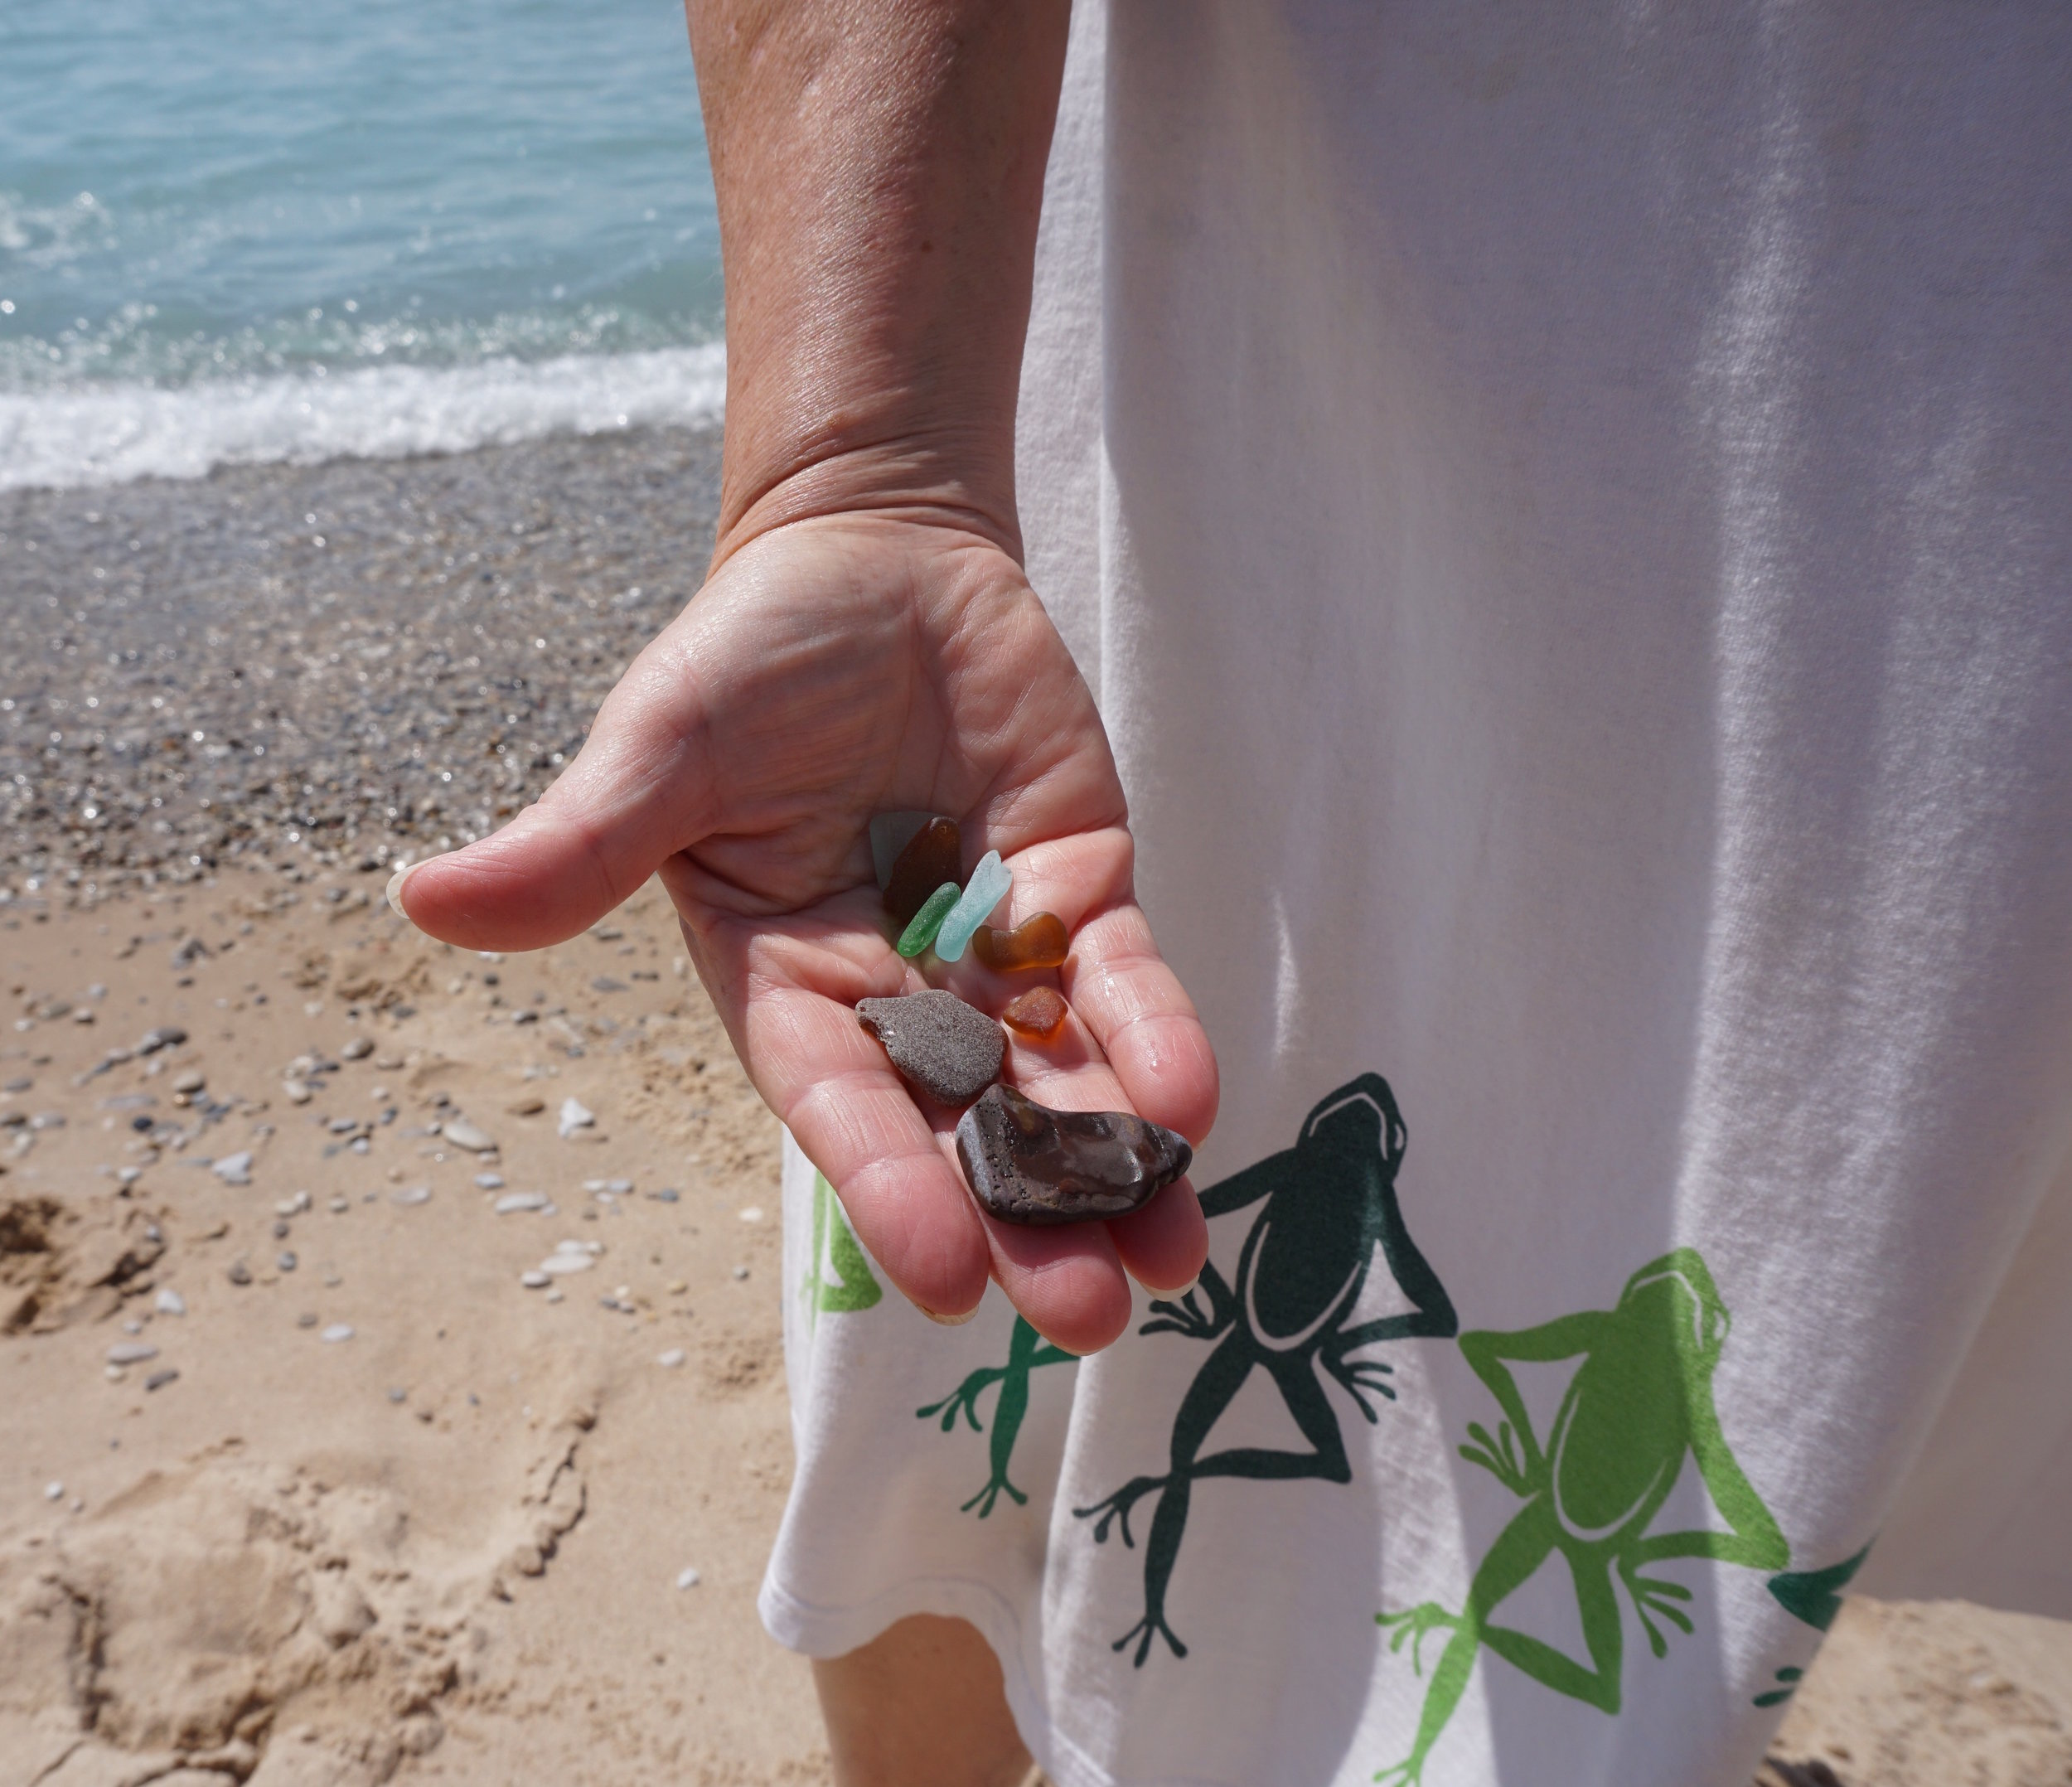 Aunt Alice returns home from a beach walk with beautiful sea glass